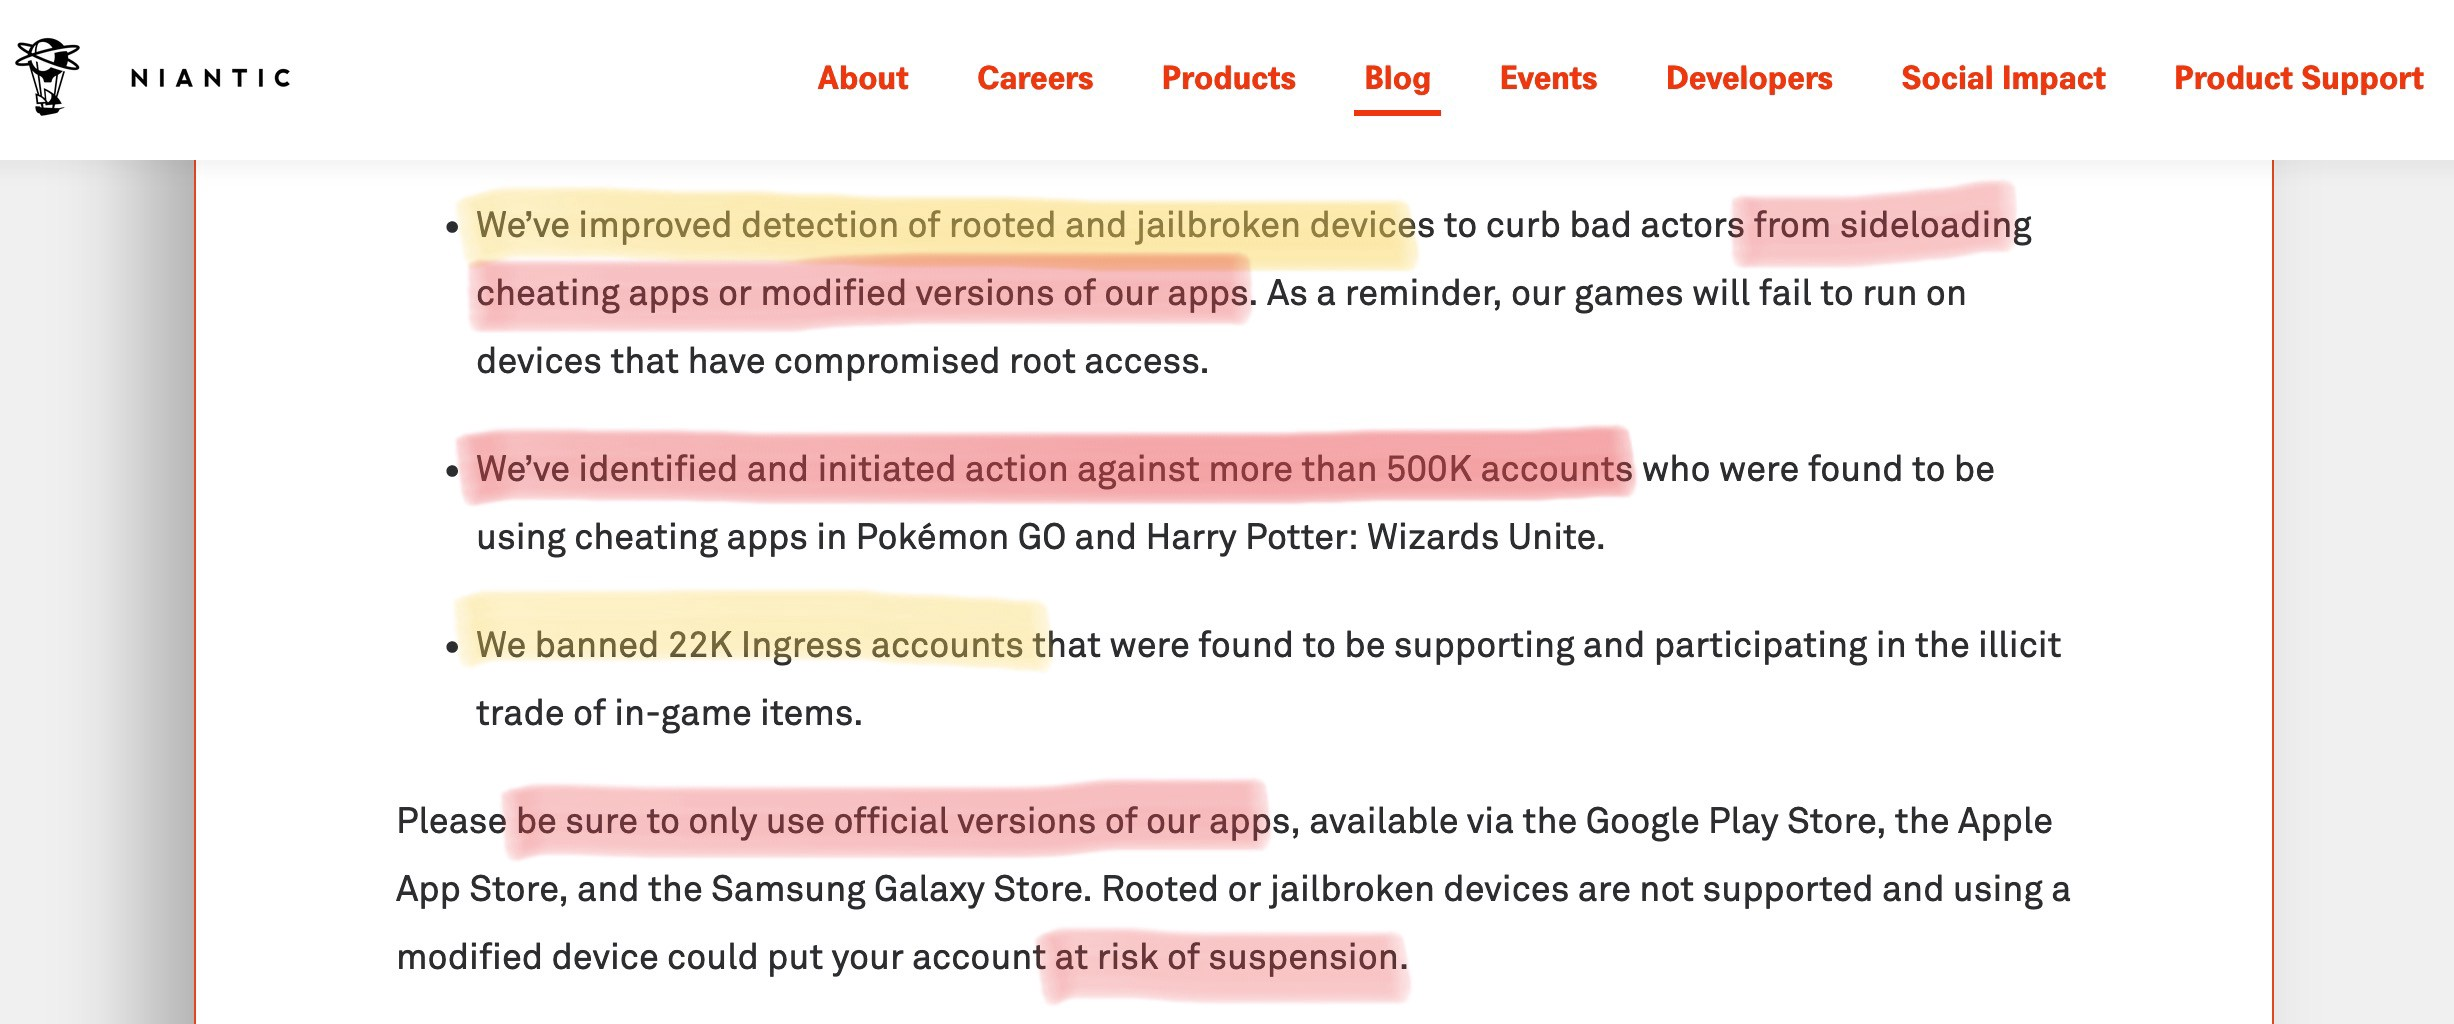 Aug 2019] Niantic Official 500K BAN WAVE for iSpoofer Users